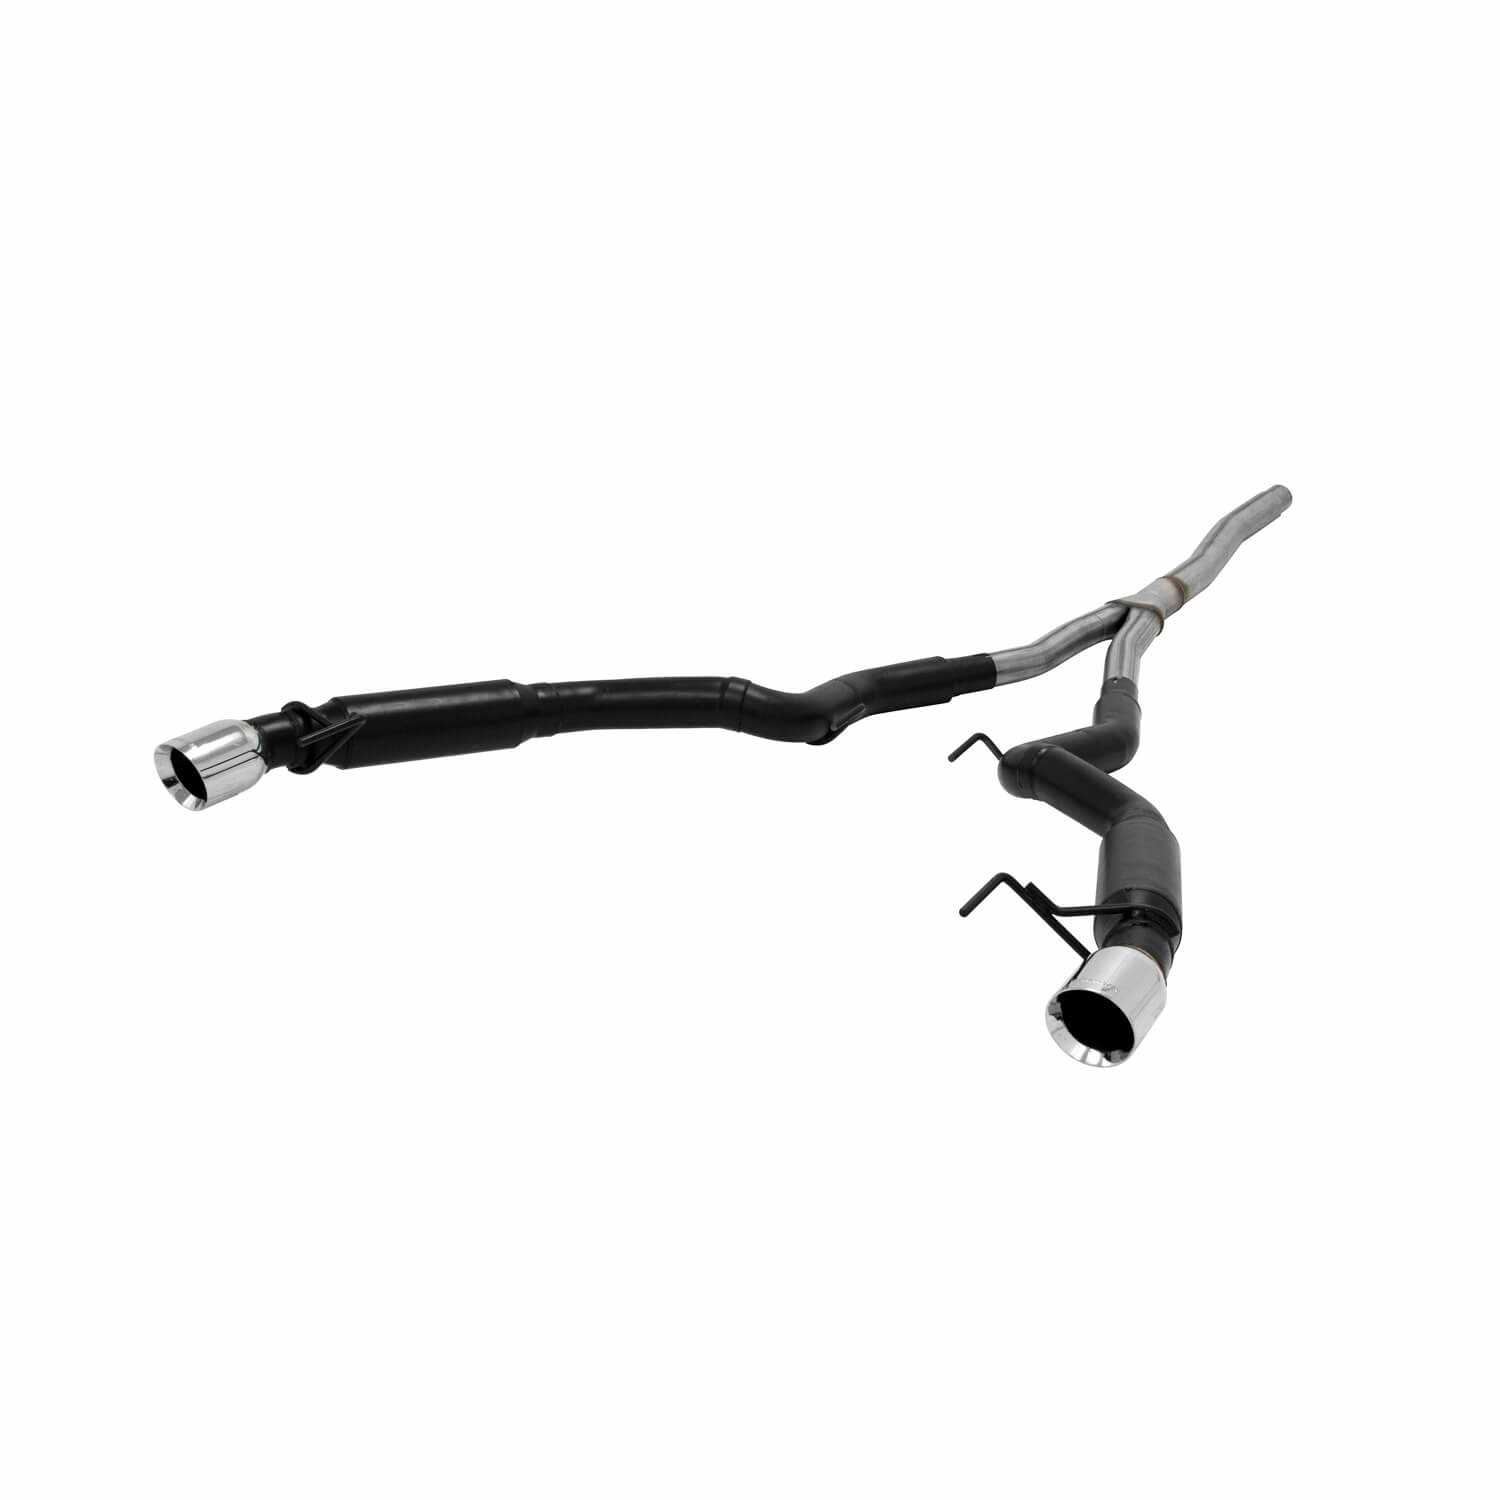 817750 Flowmaster American Thunder Cat Back Exhaust System